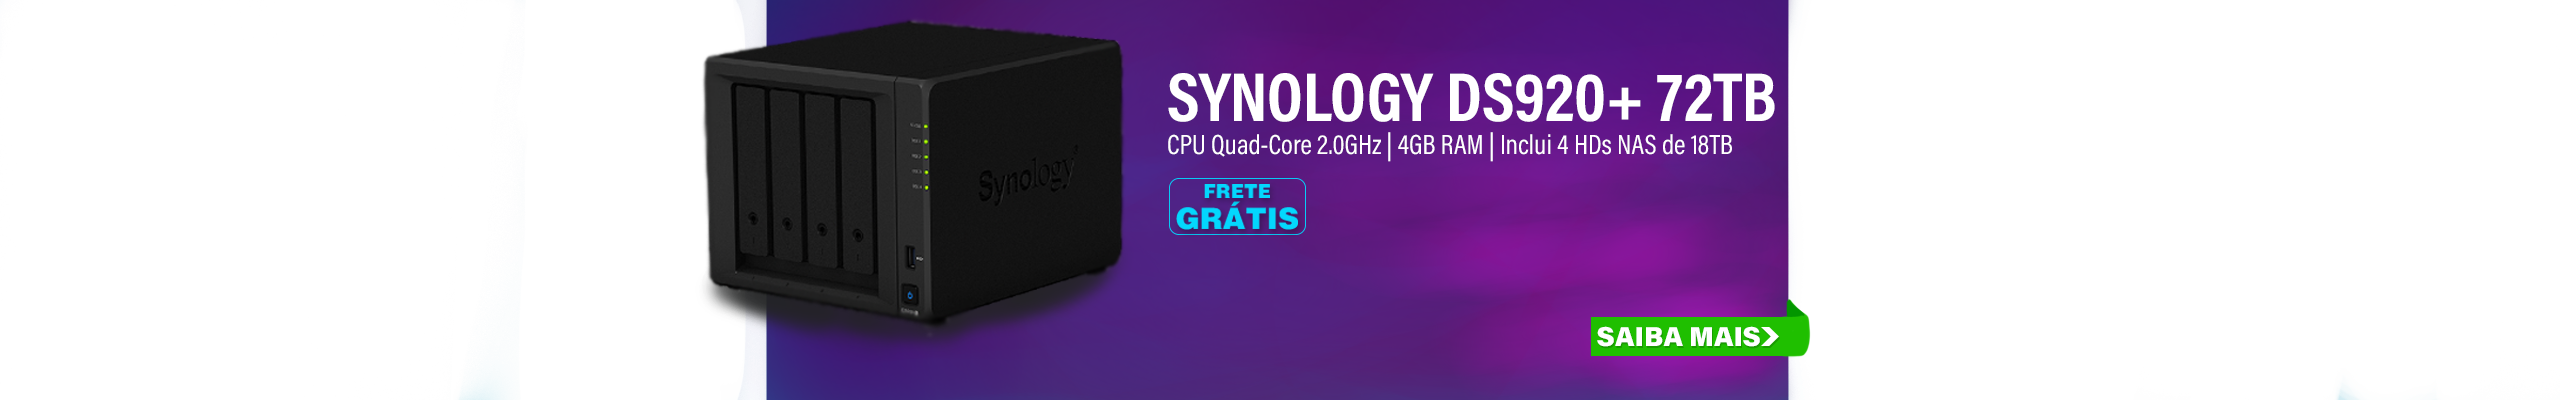 NAS SYNOLOGY | DISKSTATION DS920+ | 72TB | CPU INTEL CELERON QUAD-CORE 2.0GHZ | 4GB DDR4 | INCLUI 4 HDS EXOS DE 18TB